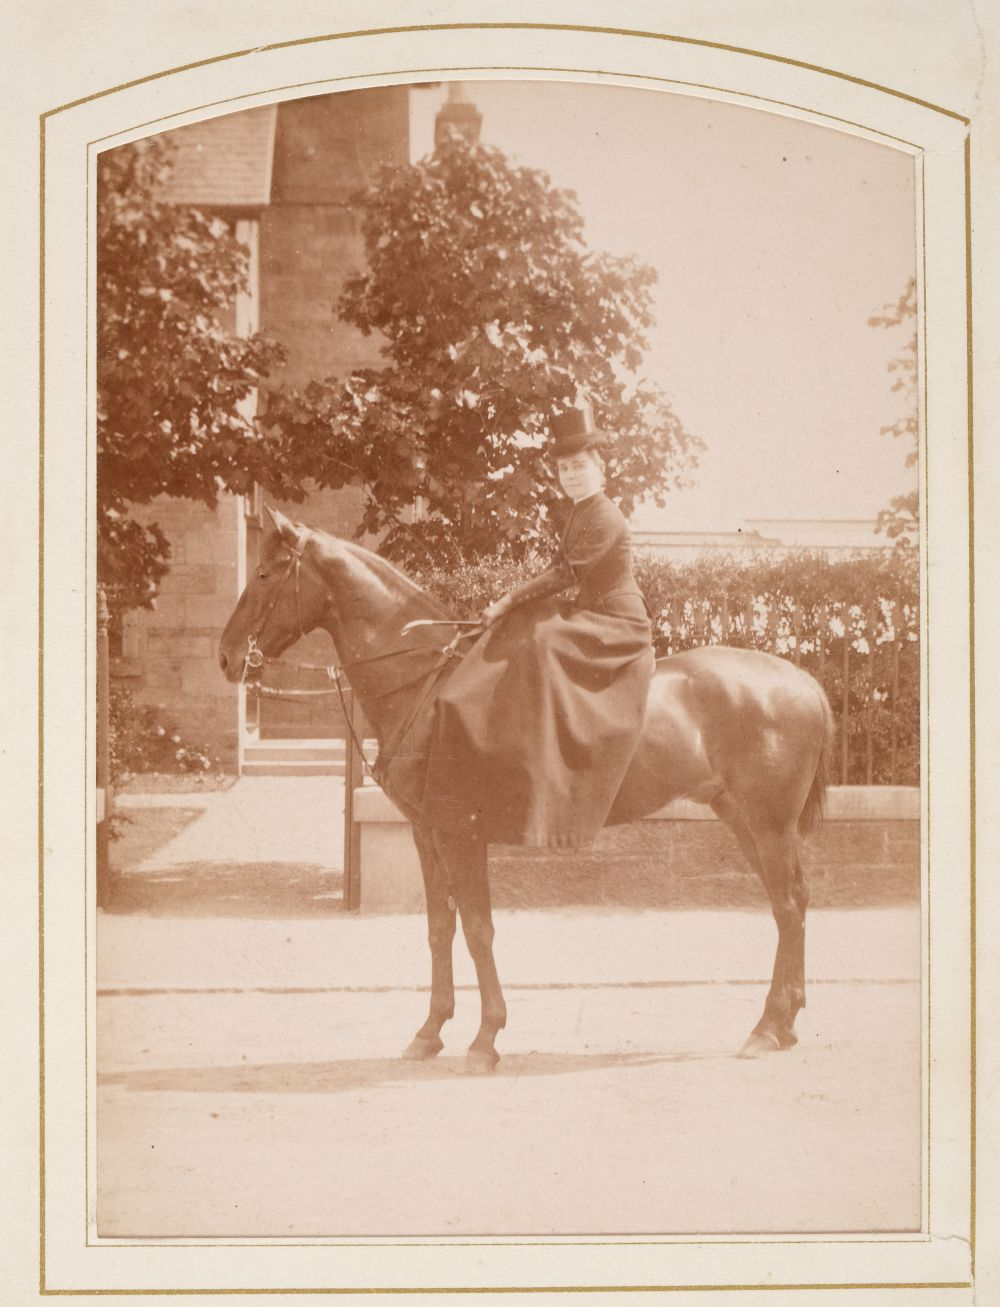 * Cartes de visite. A group of 3 albums of cartes de visite and cabinet cards - Image 20 of 26